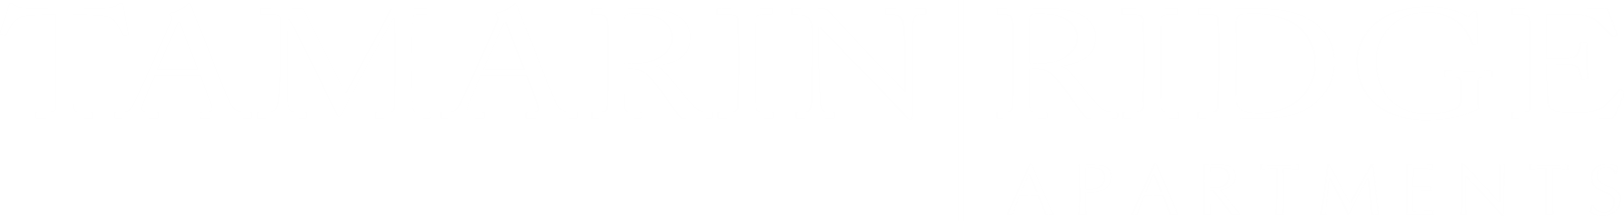 Lincoln Property Logo 2